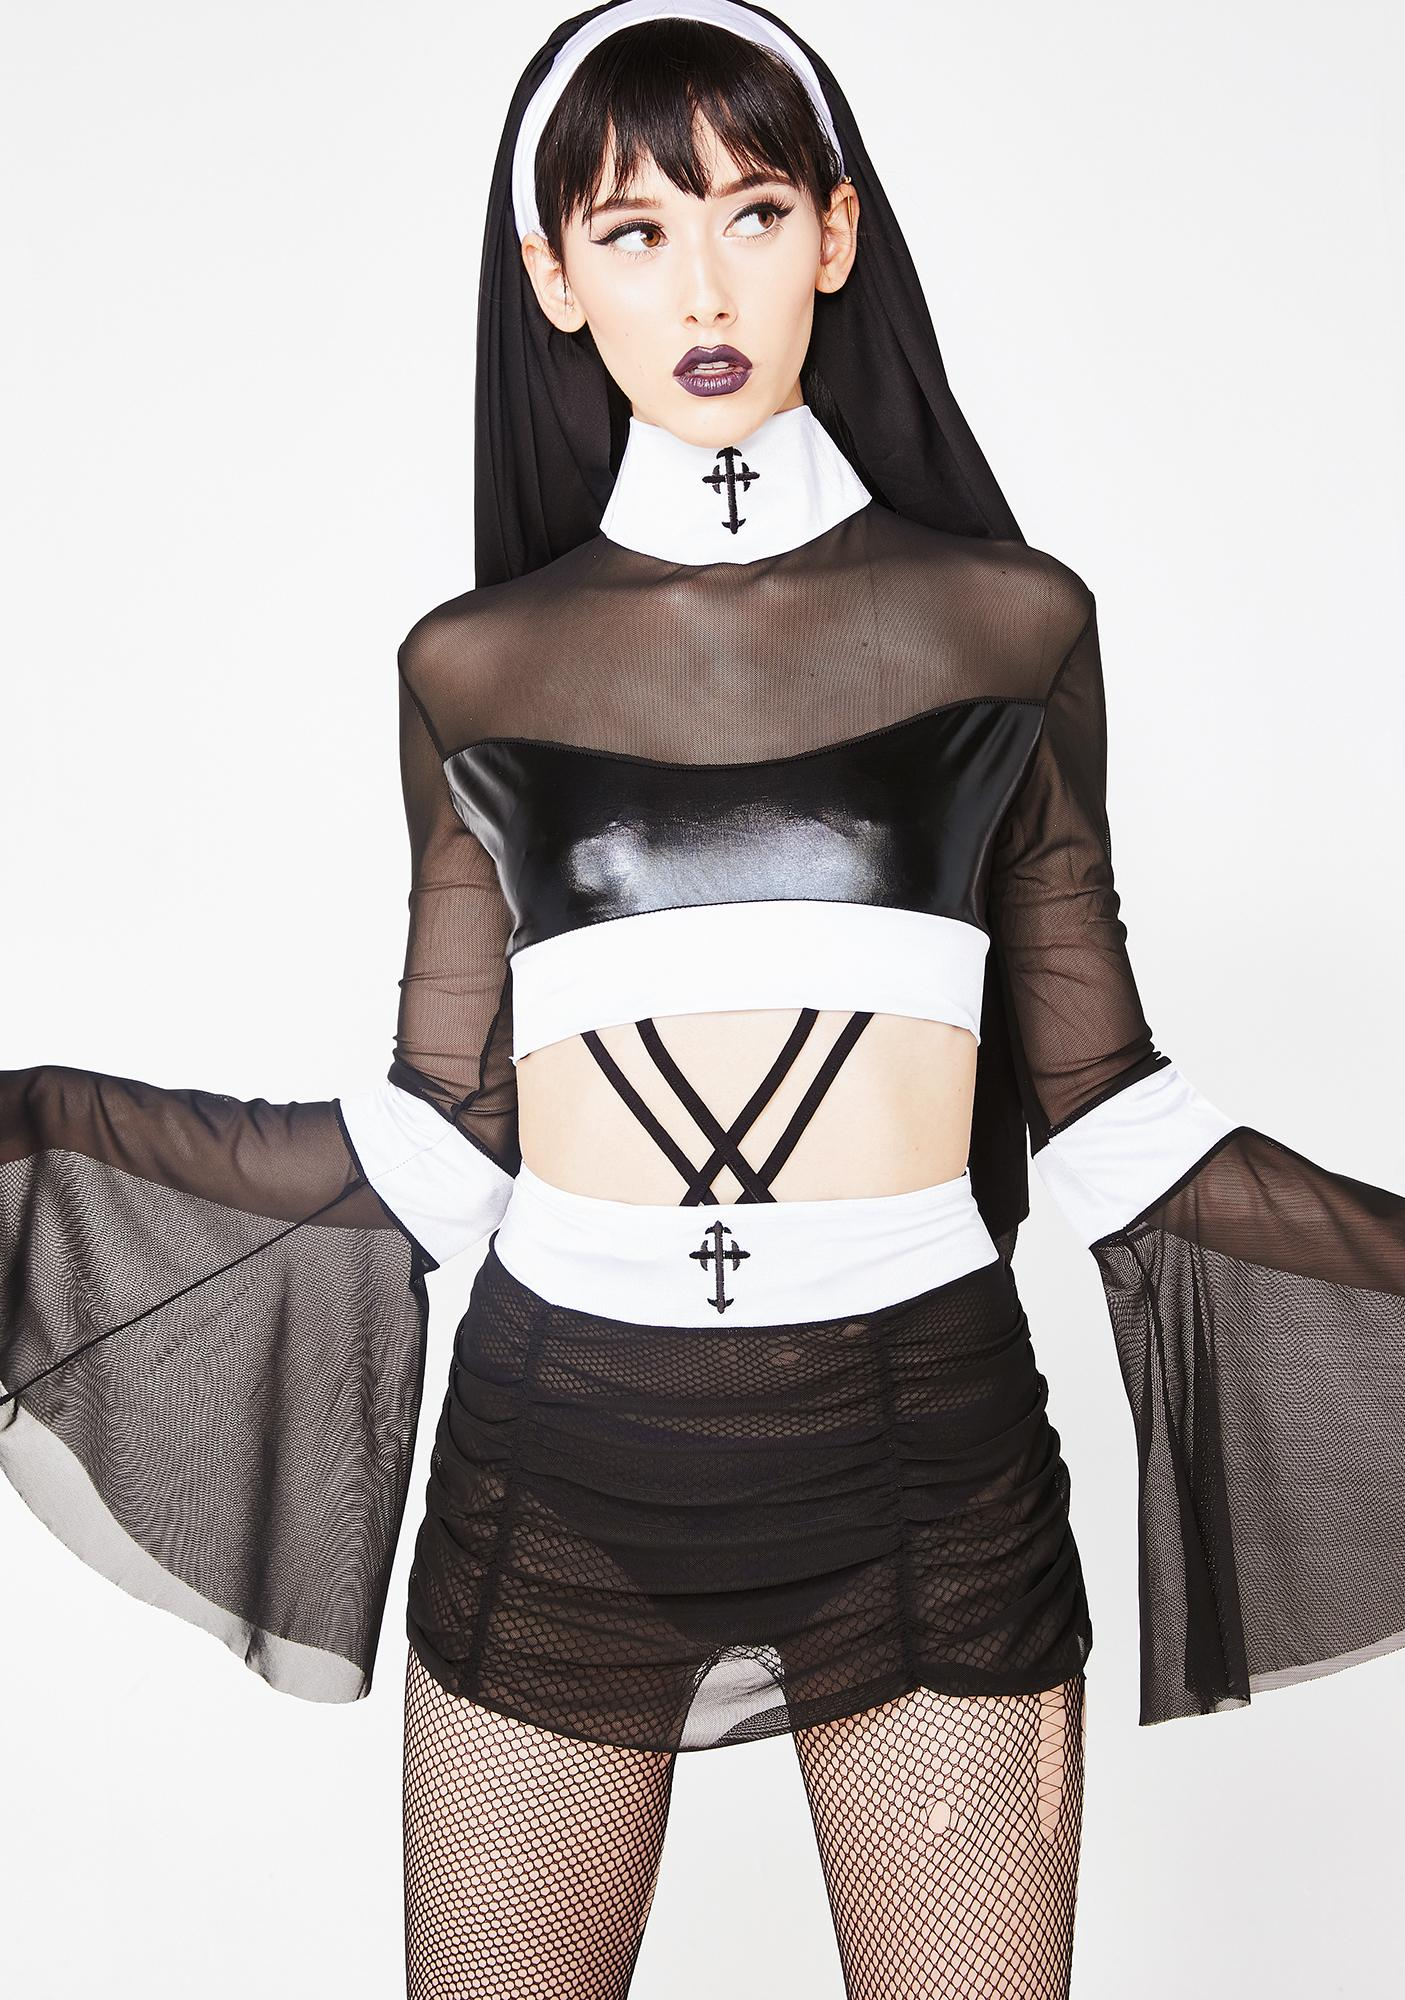 Depraved Naughty Nun Costume